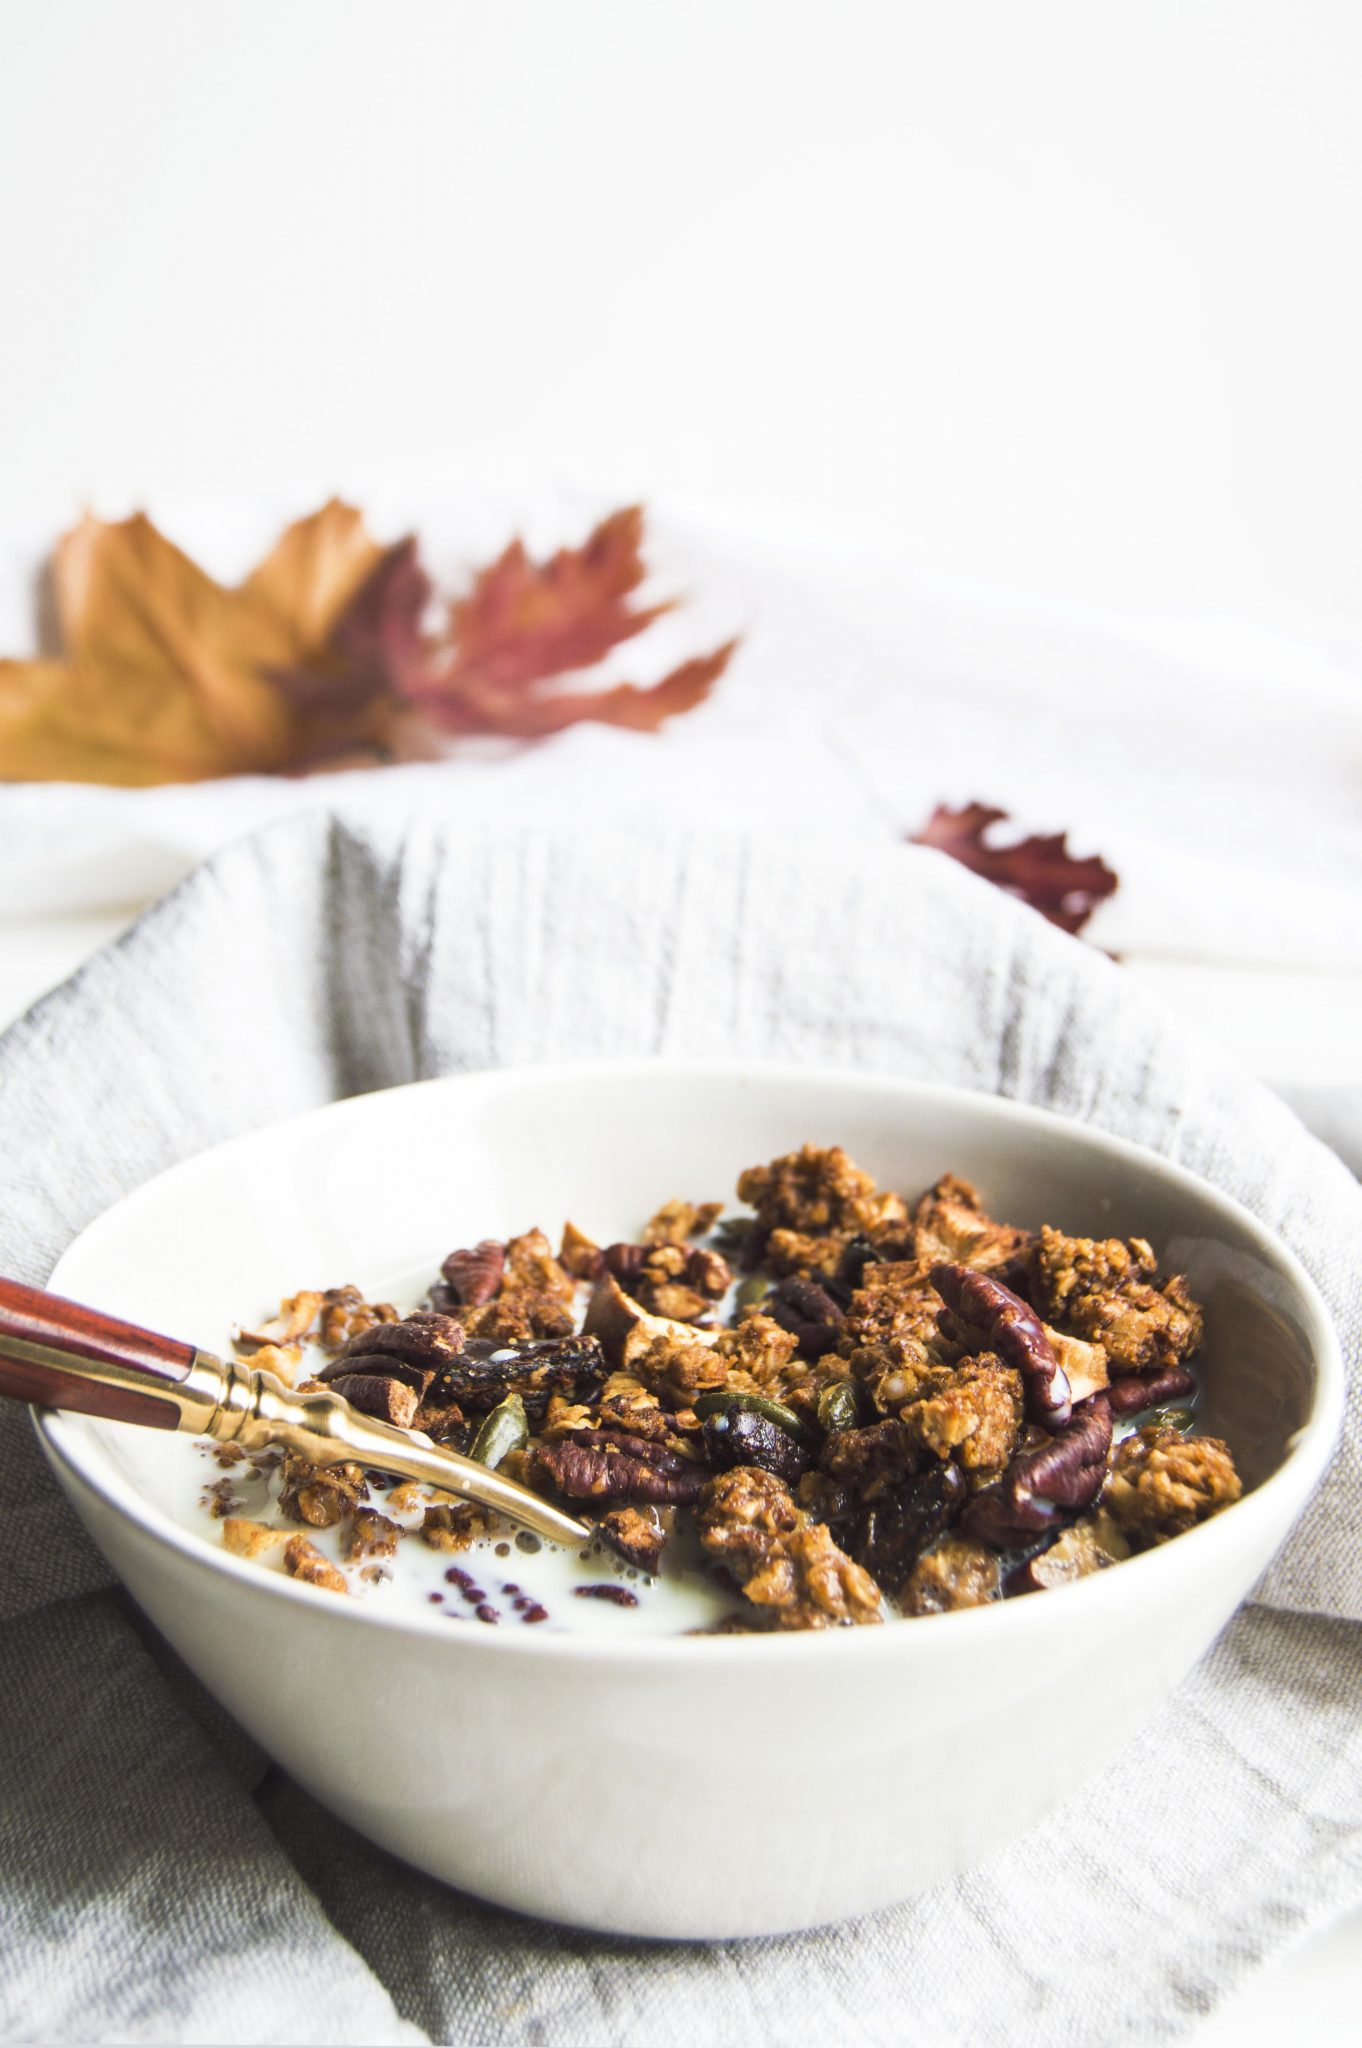 February 2016 Recipes 2016 10 23 Baked Apples With A Spiced Granola >> Vegan Autumn Spiced Granola My Vibrant Kitchen